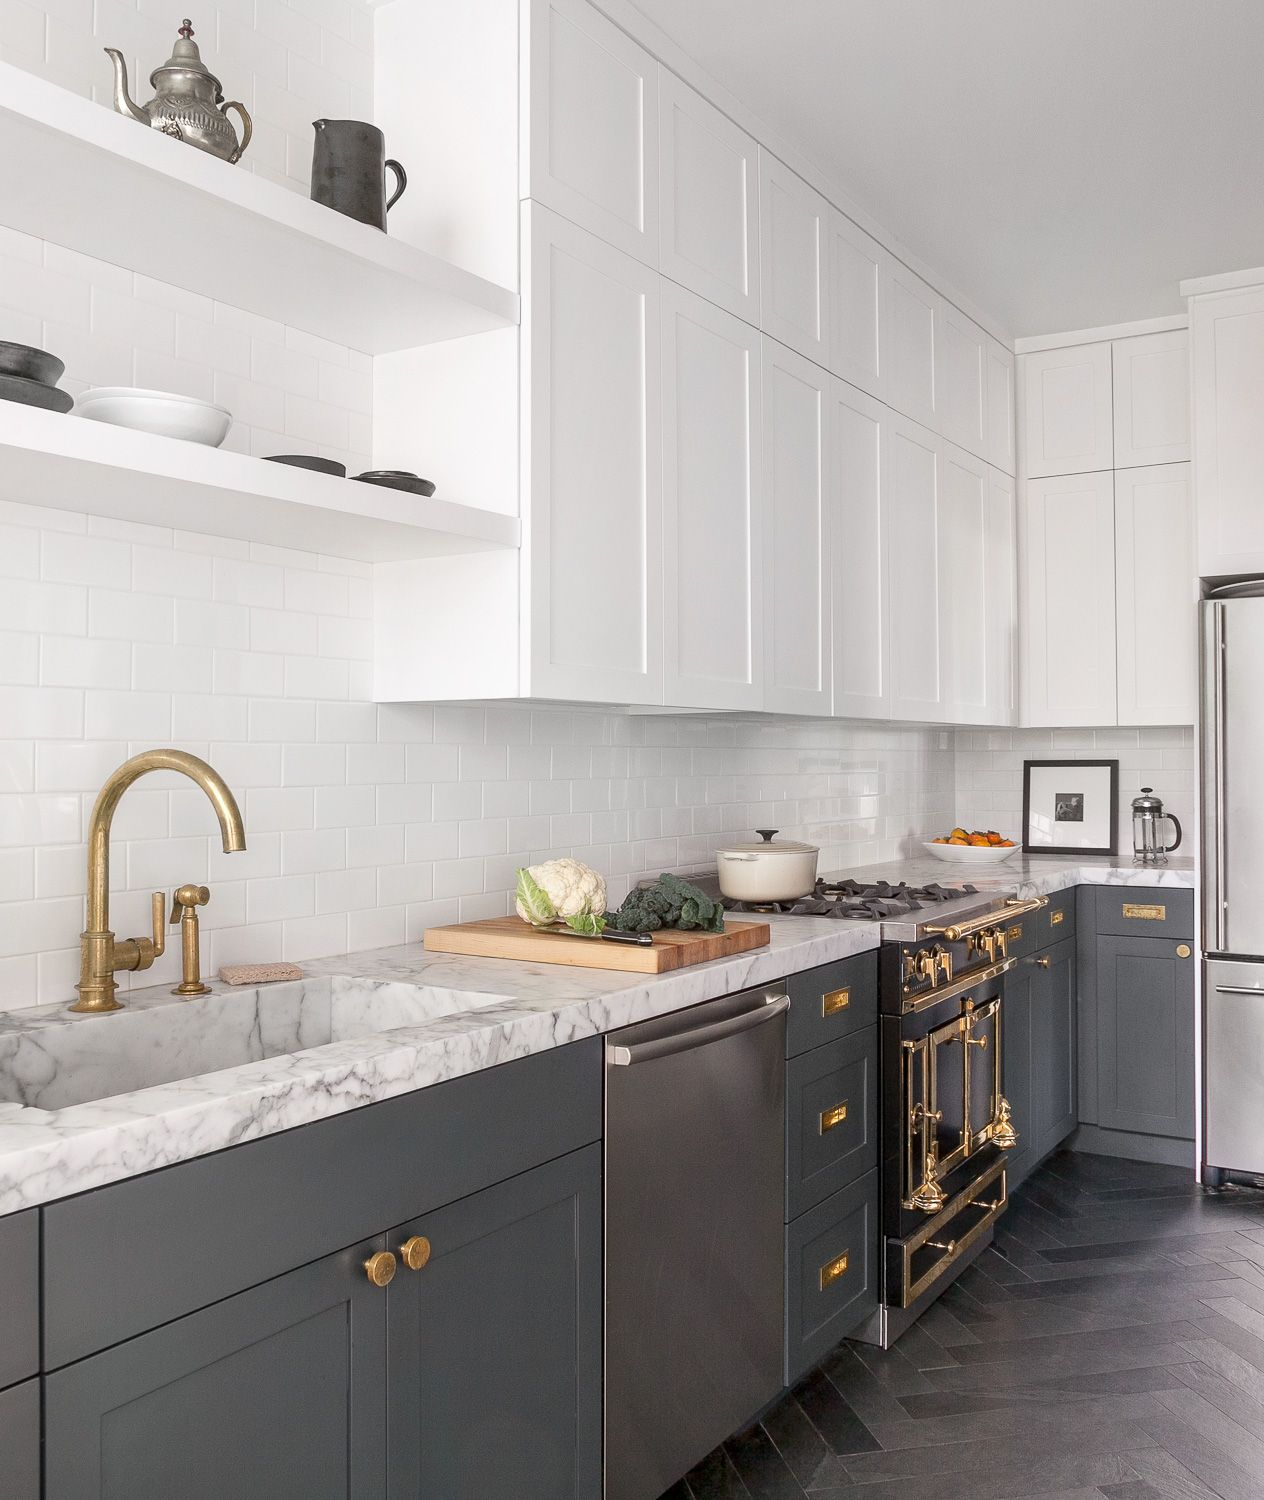 Room by Grant K. Gibson at grantkgibson.com | Kitchen... | Pinterest ...